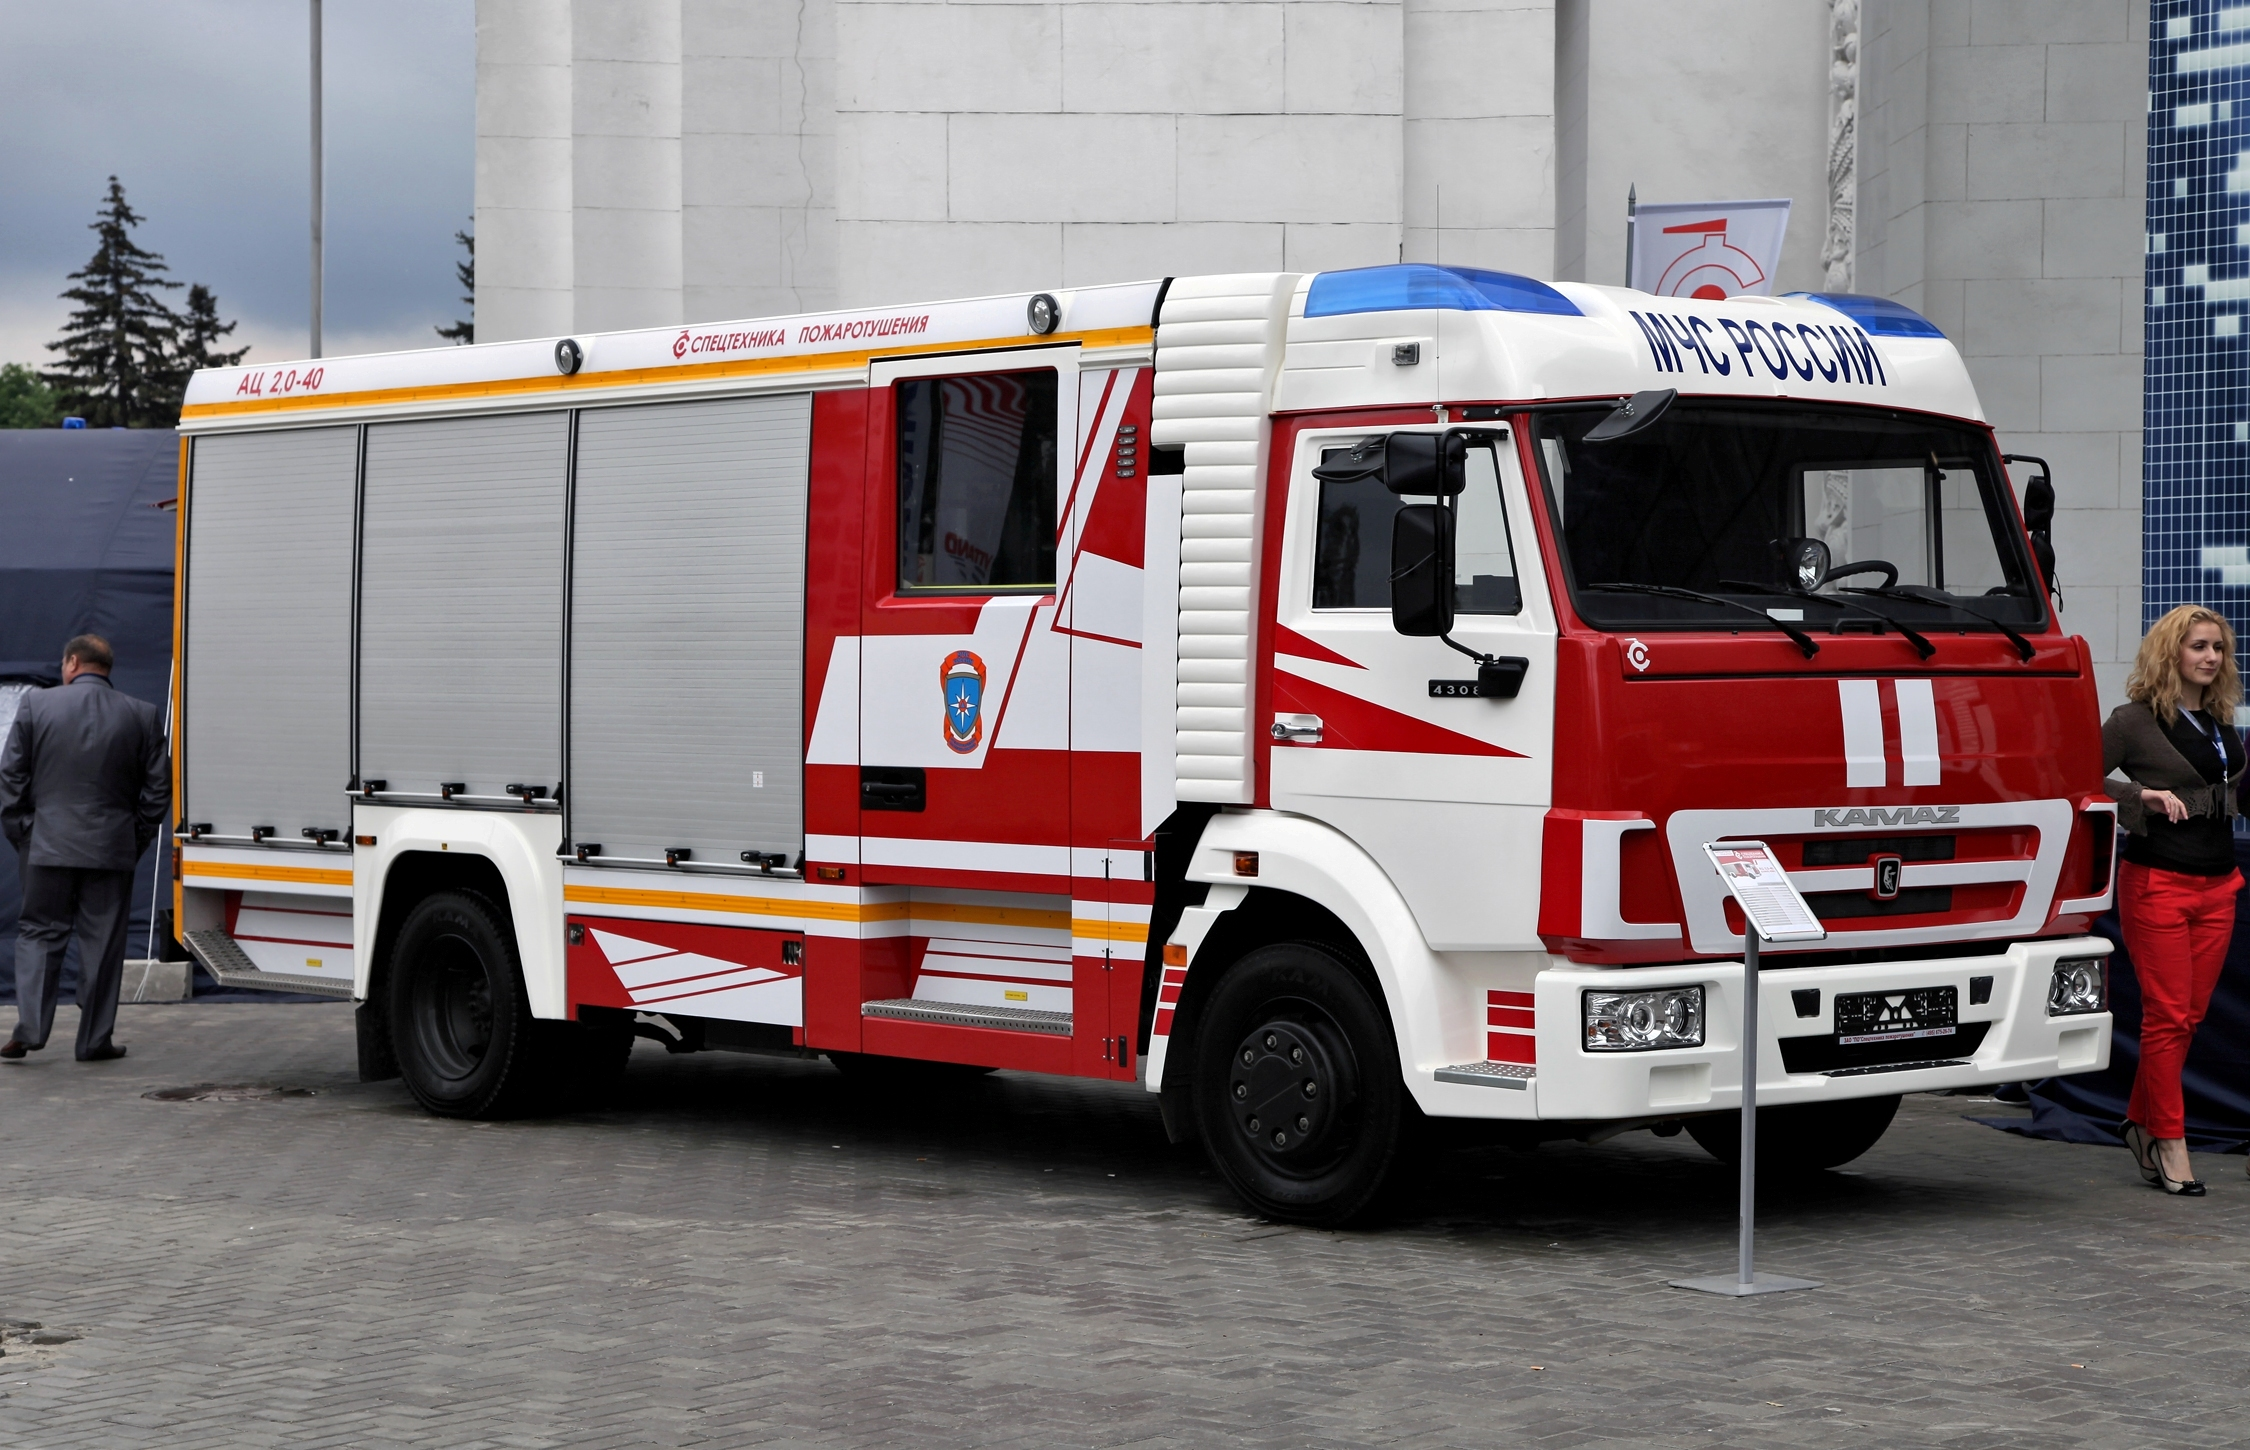 File:AC-2,0-40 on KAMAZ-4308 chassis.jpg